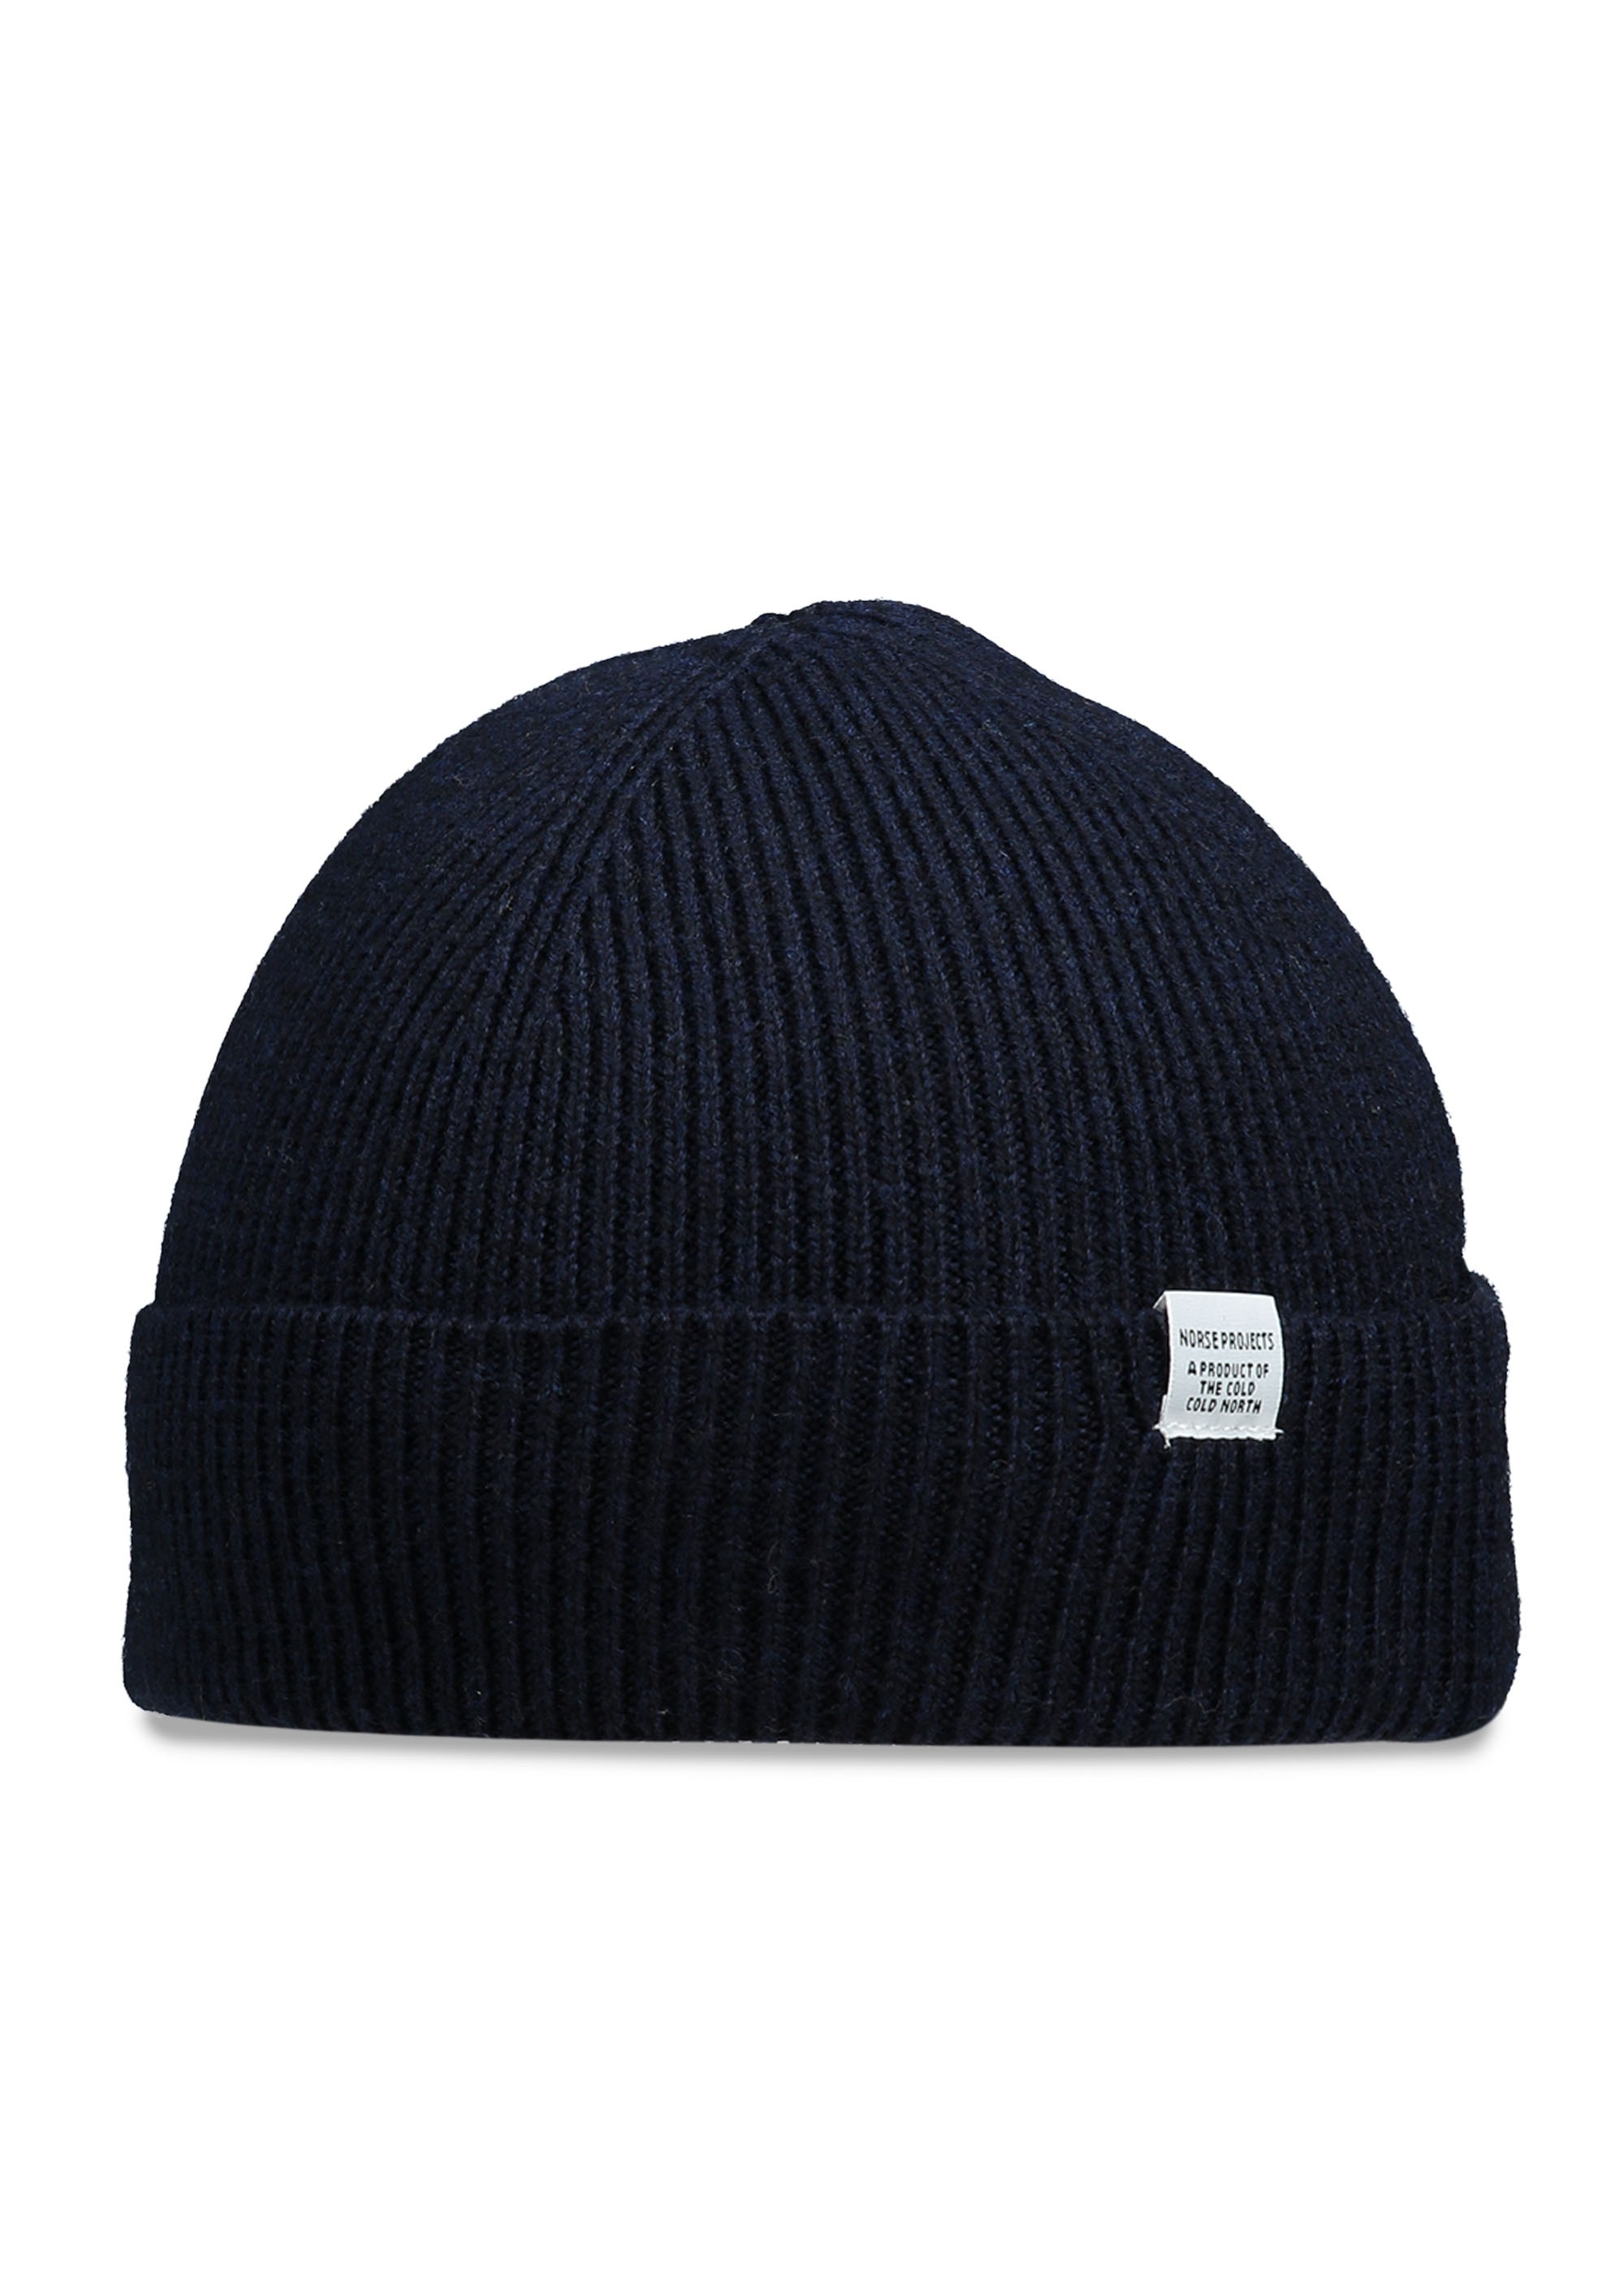 48907f45b22 Norse Projects Norse Beanie - Dark Navy - Headwear from Triads UK